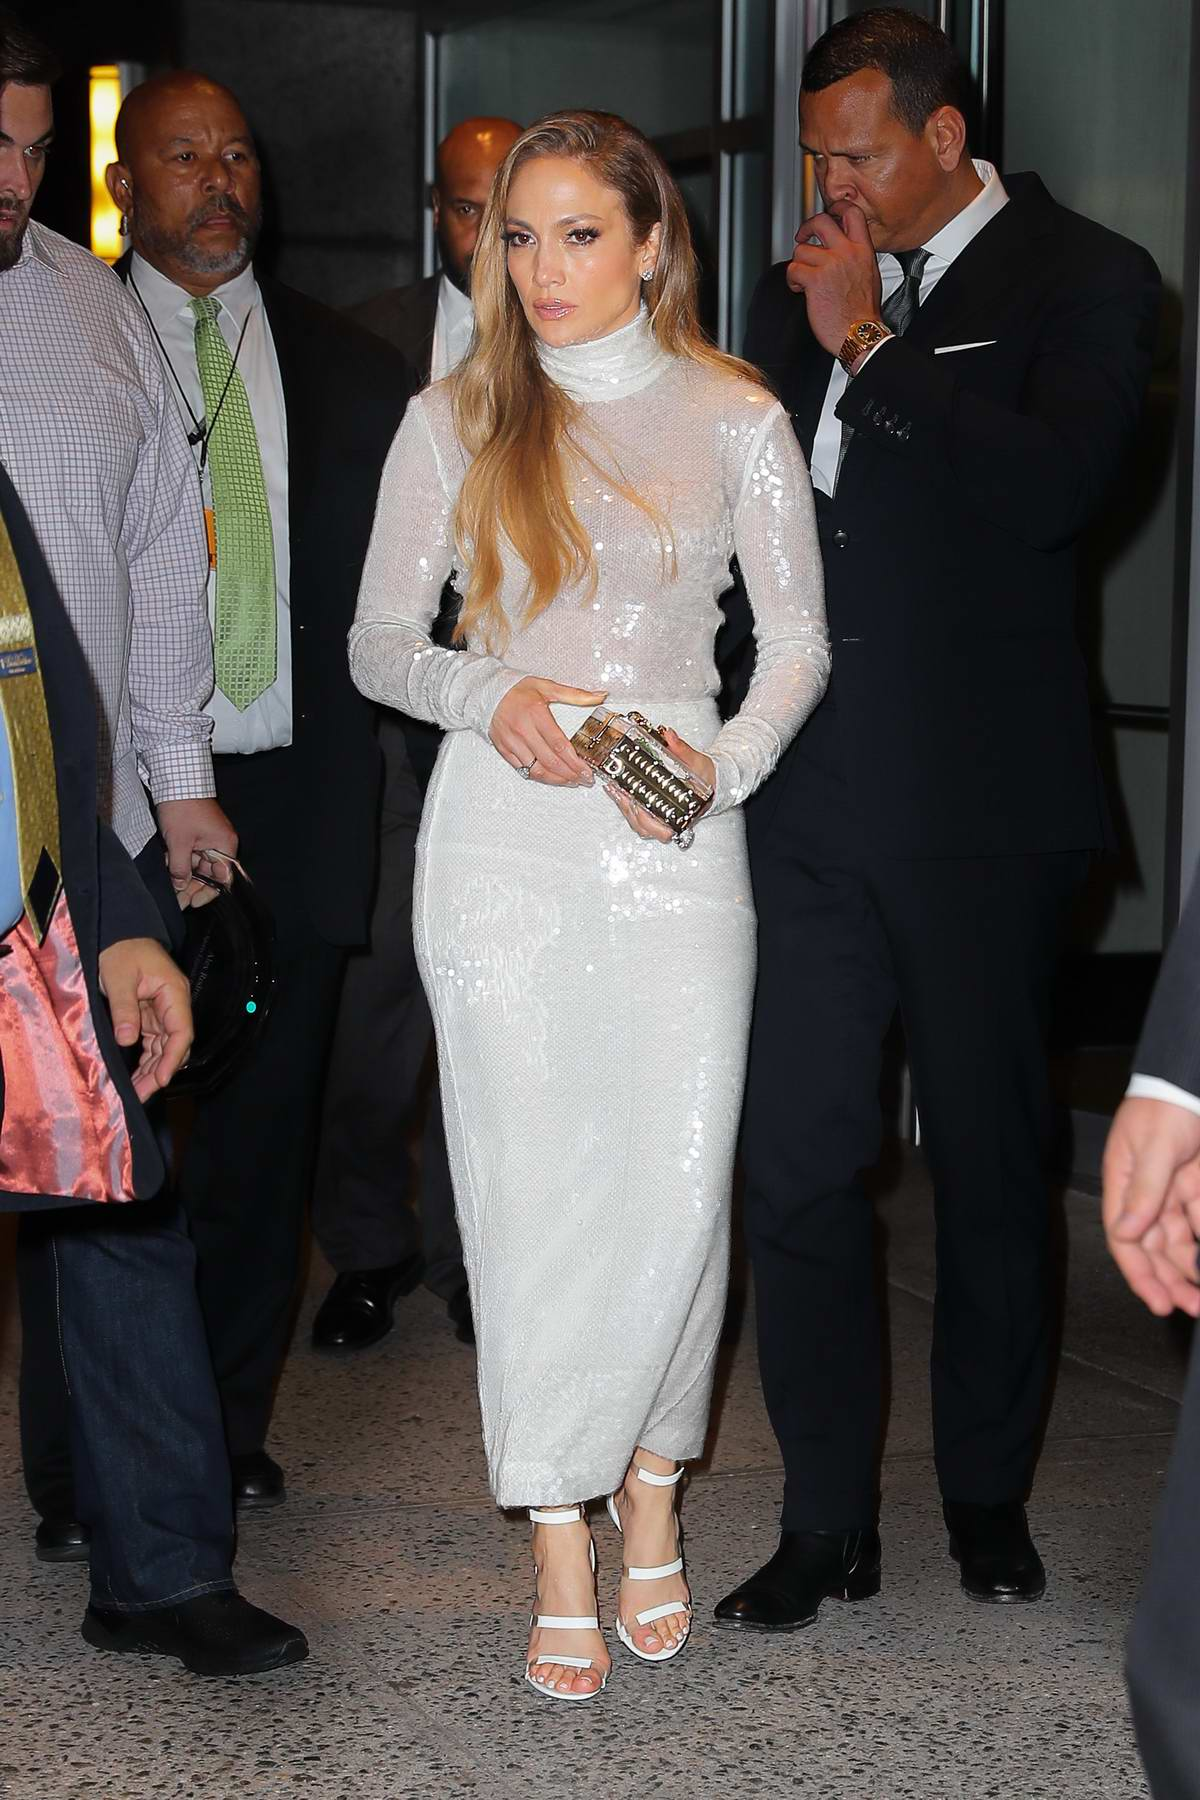 Jennifer Lopez wears a pastel blue dress while out on a date night with Alex Rodriguez in New York City